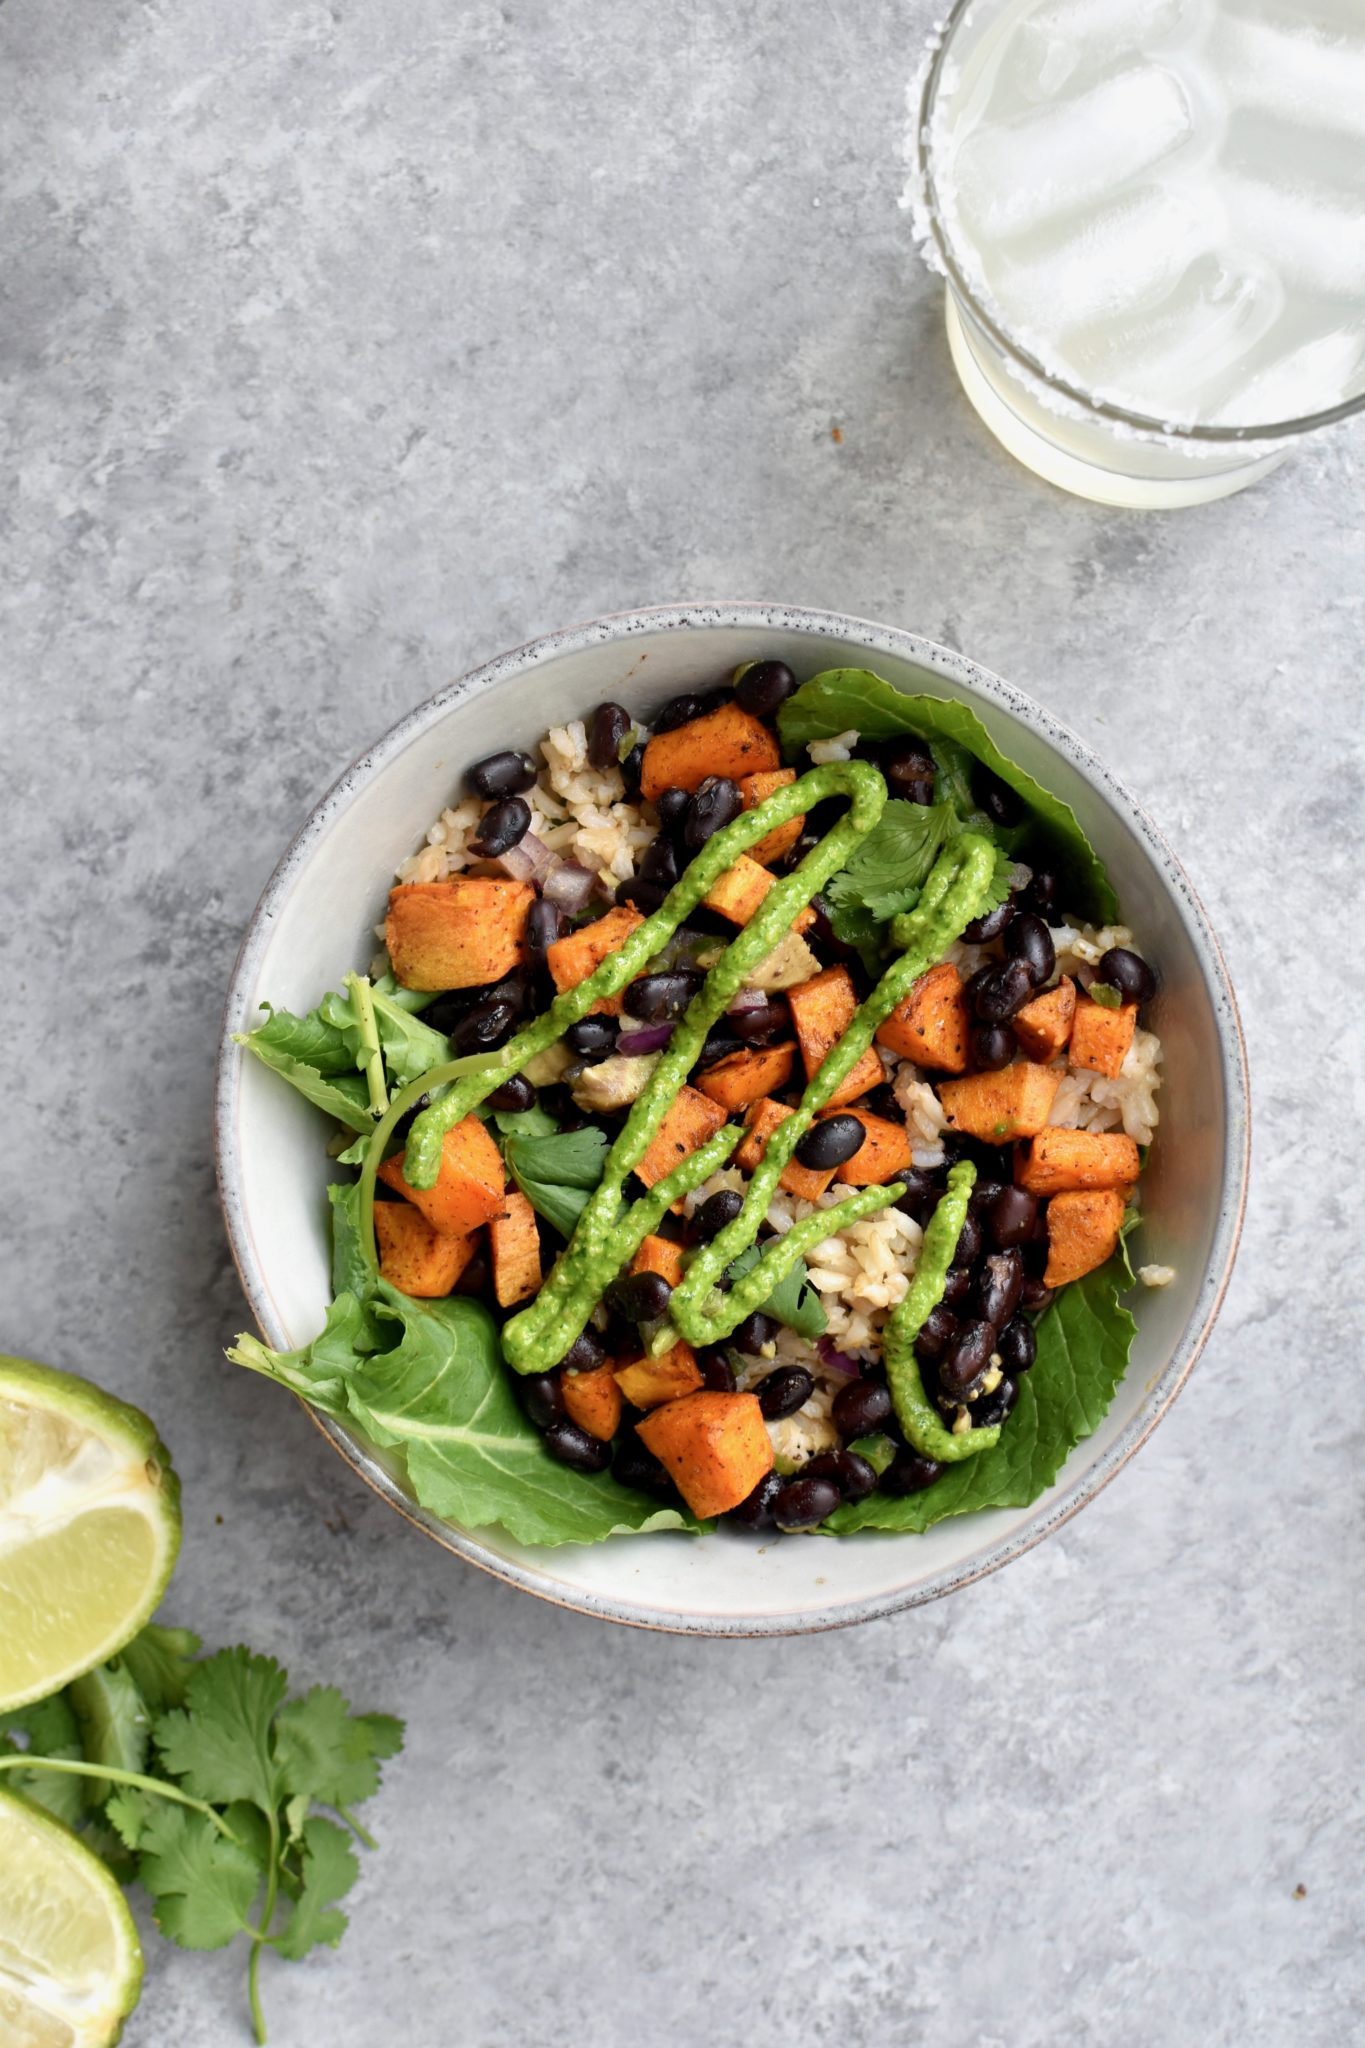 power plate's sweet potato bowls with cilantro lime rice and black beans // cait's plate